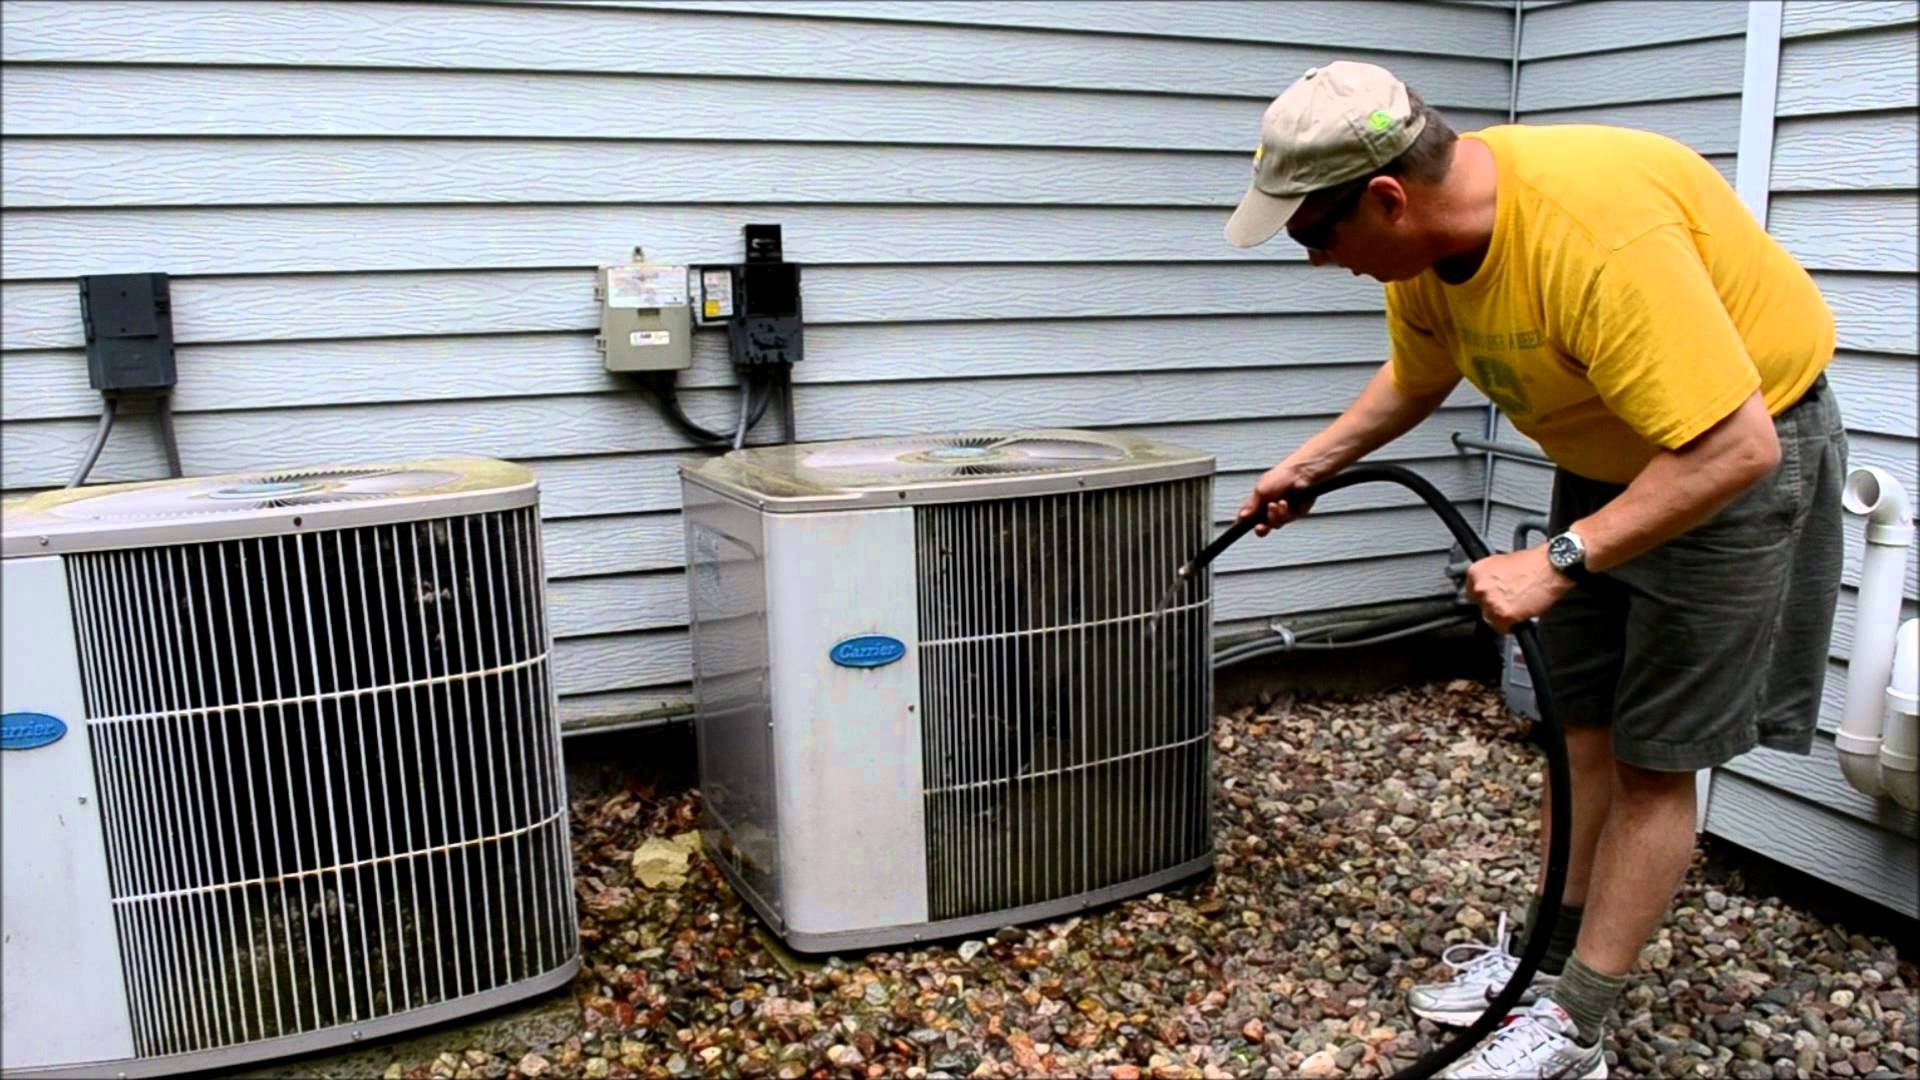 Cleaning Air Conditioner Coils (How To Video) Clean air